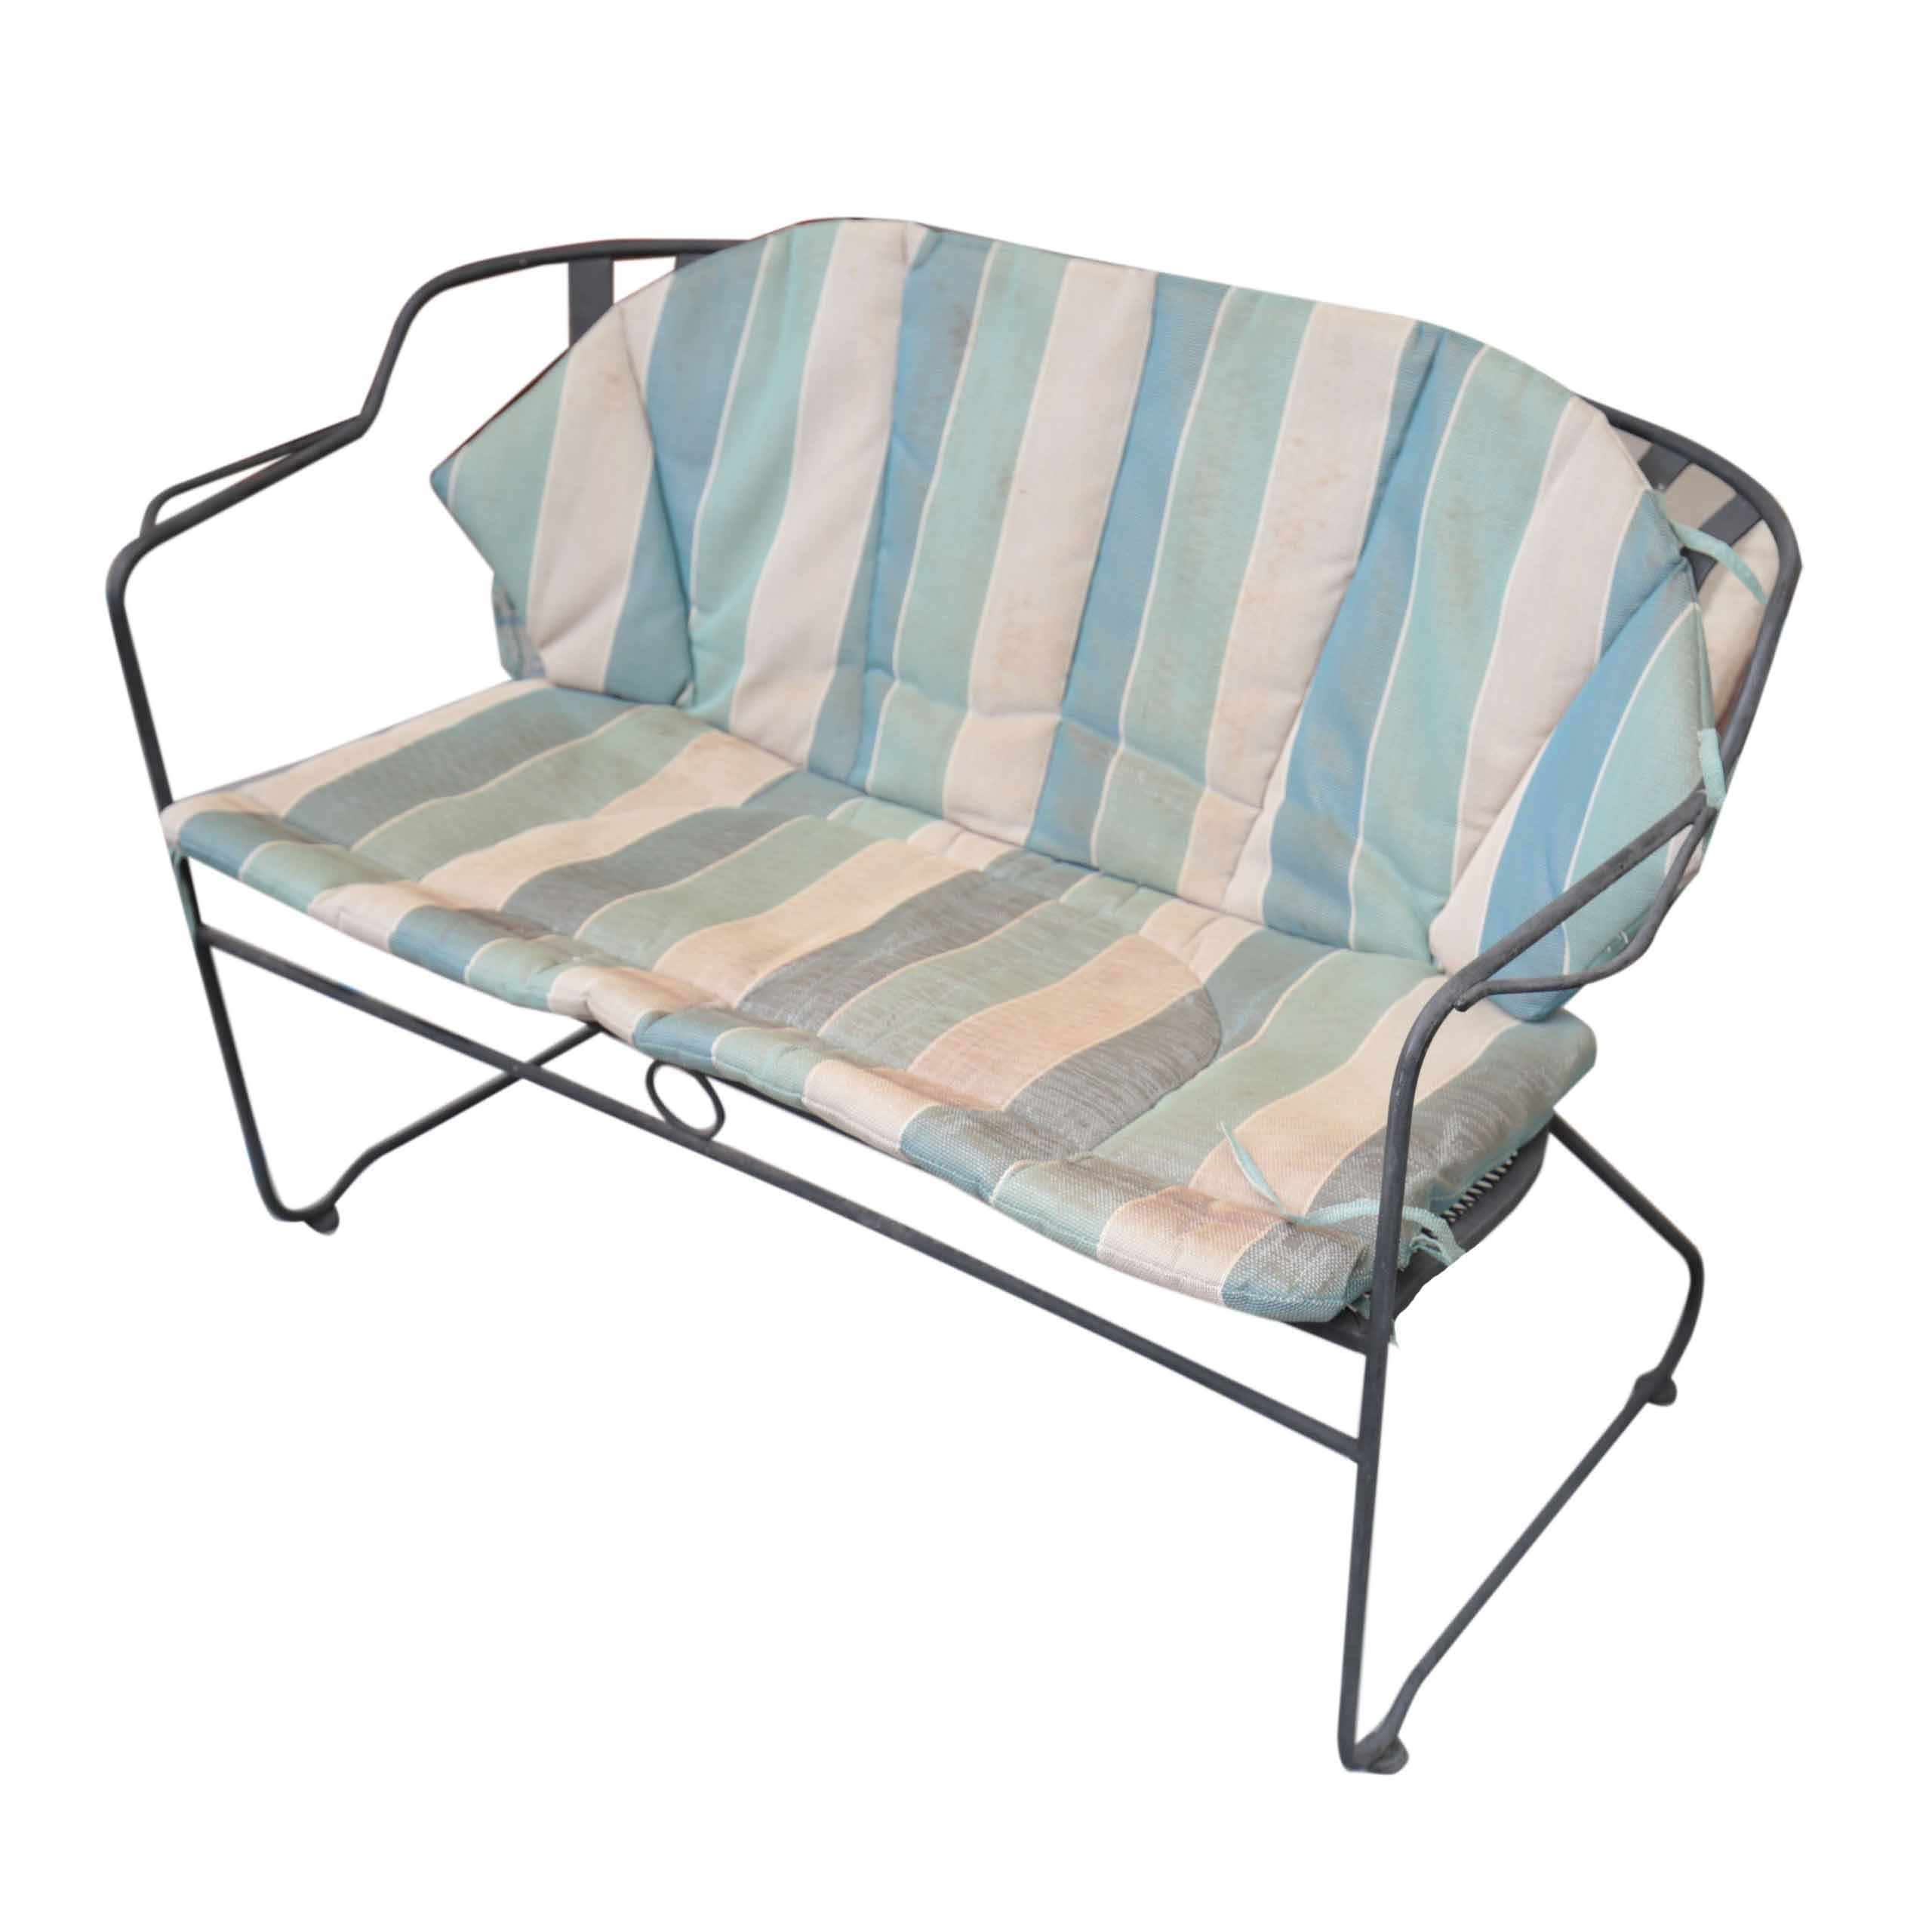 Vintage Metal Patio Settee with Cushion